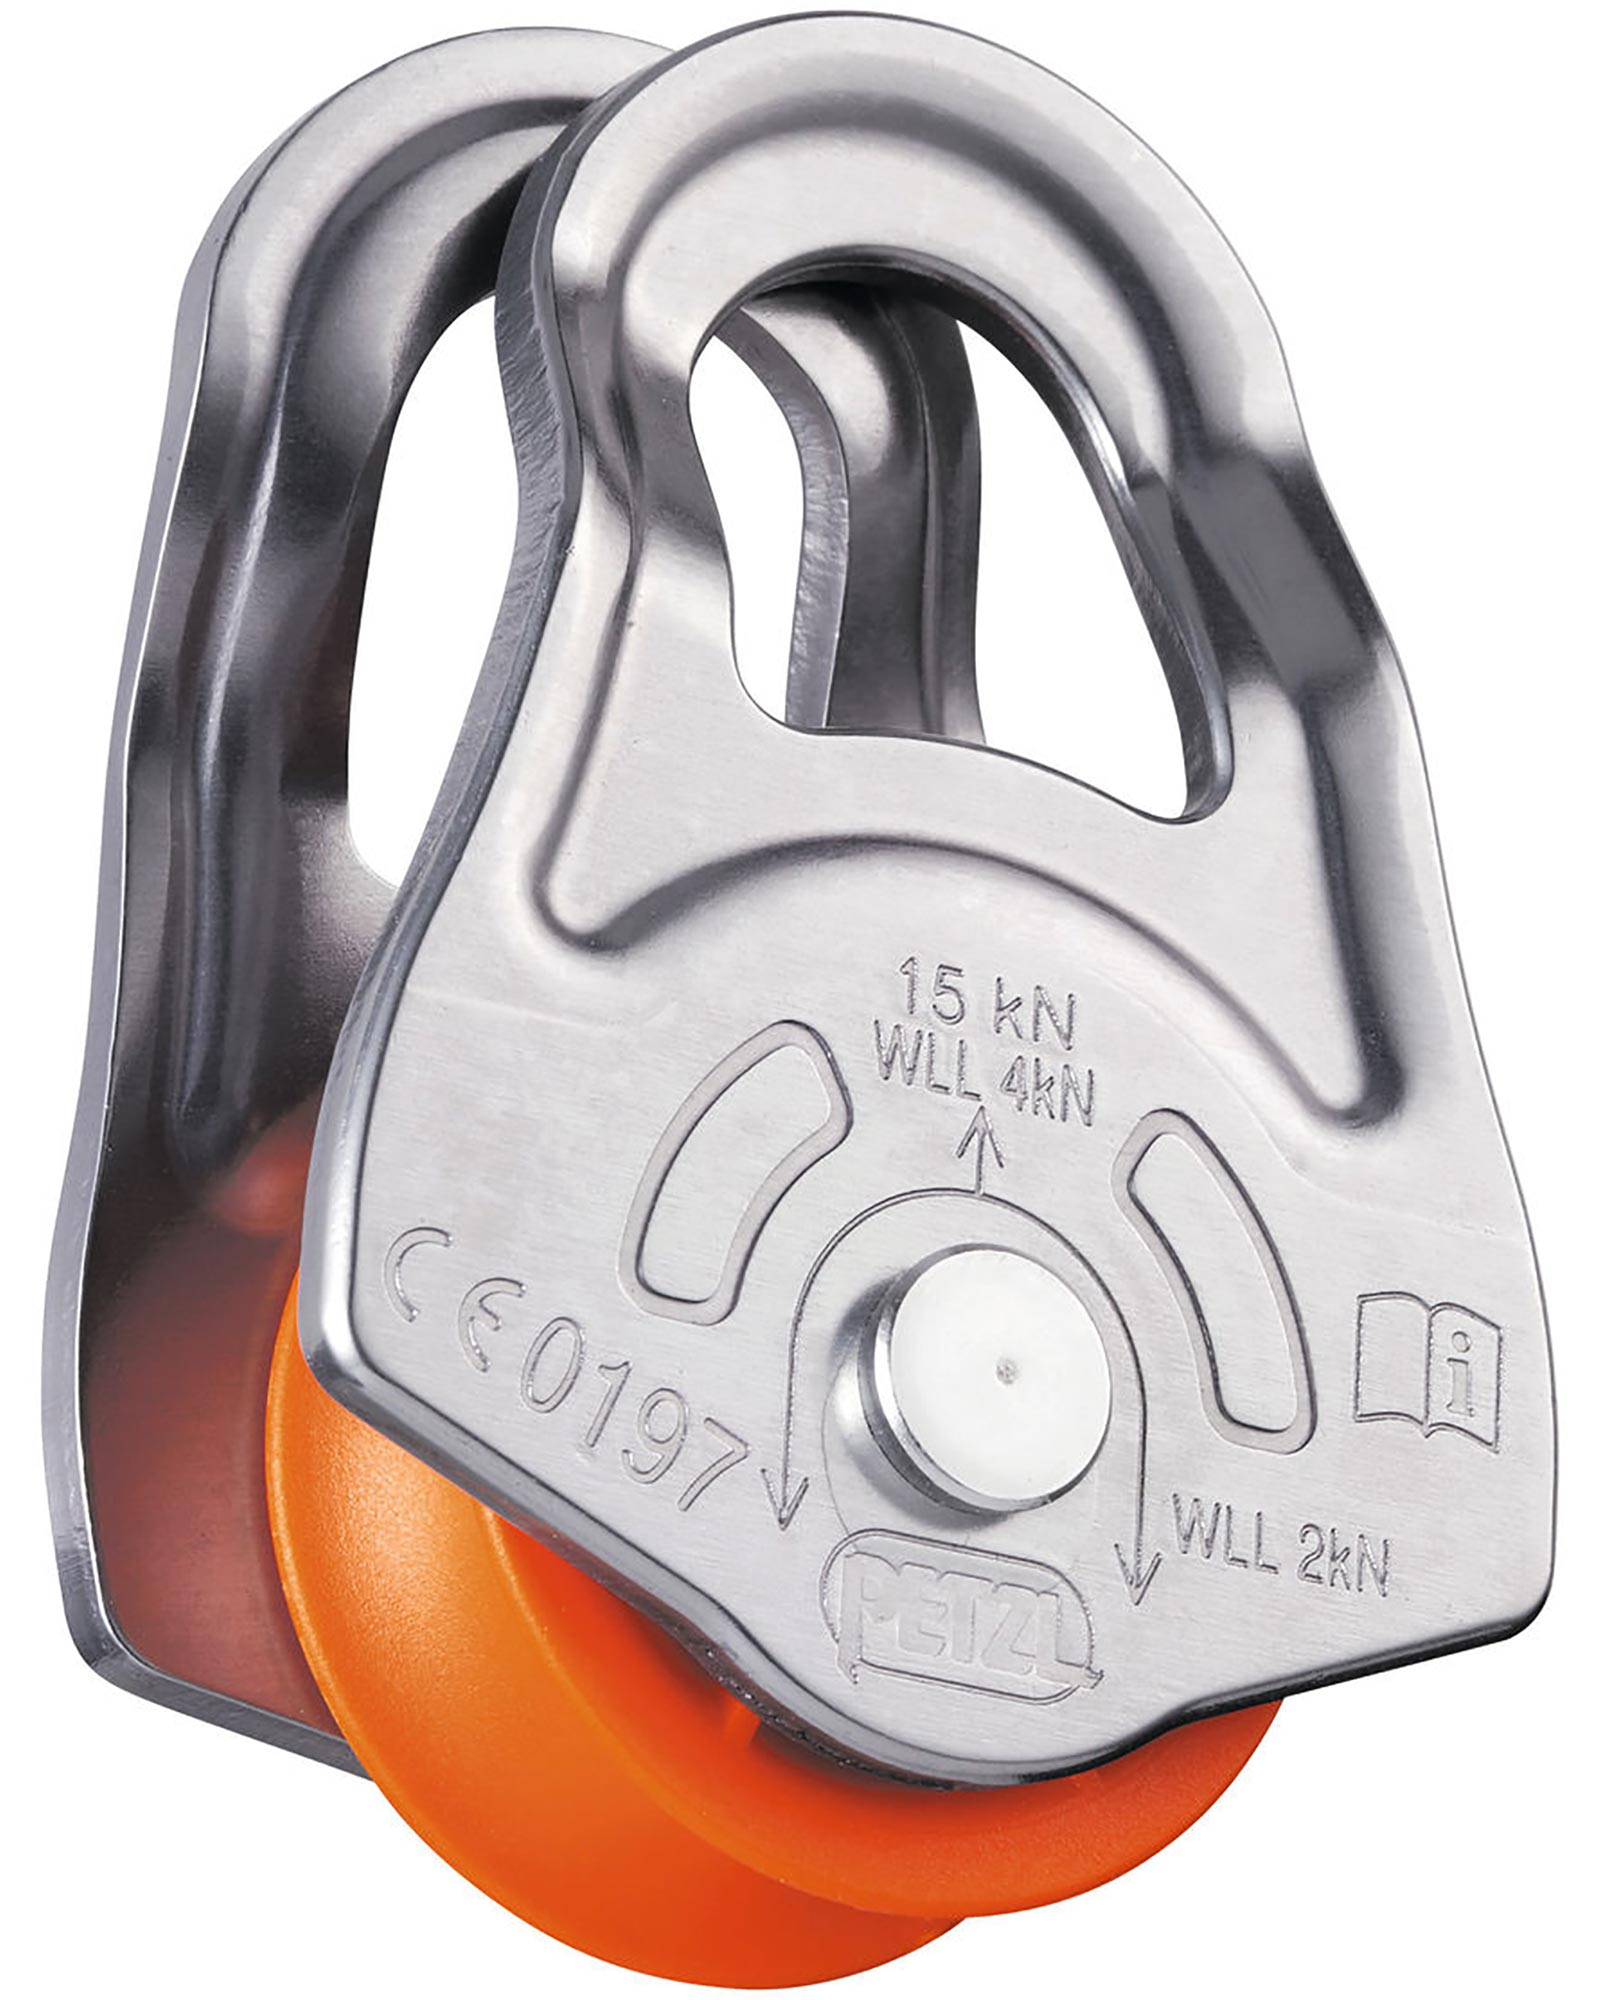 Product image of Petzl Oscillante Pulley